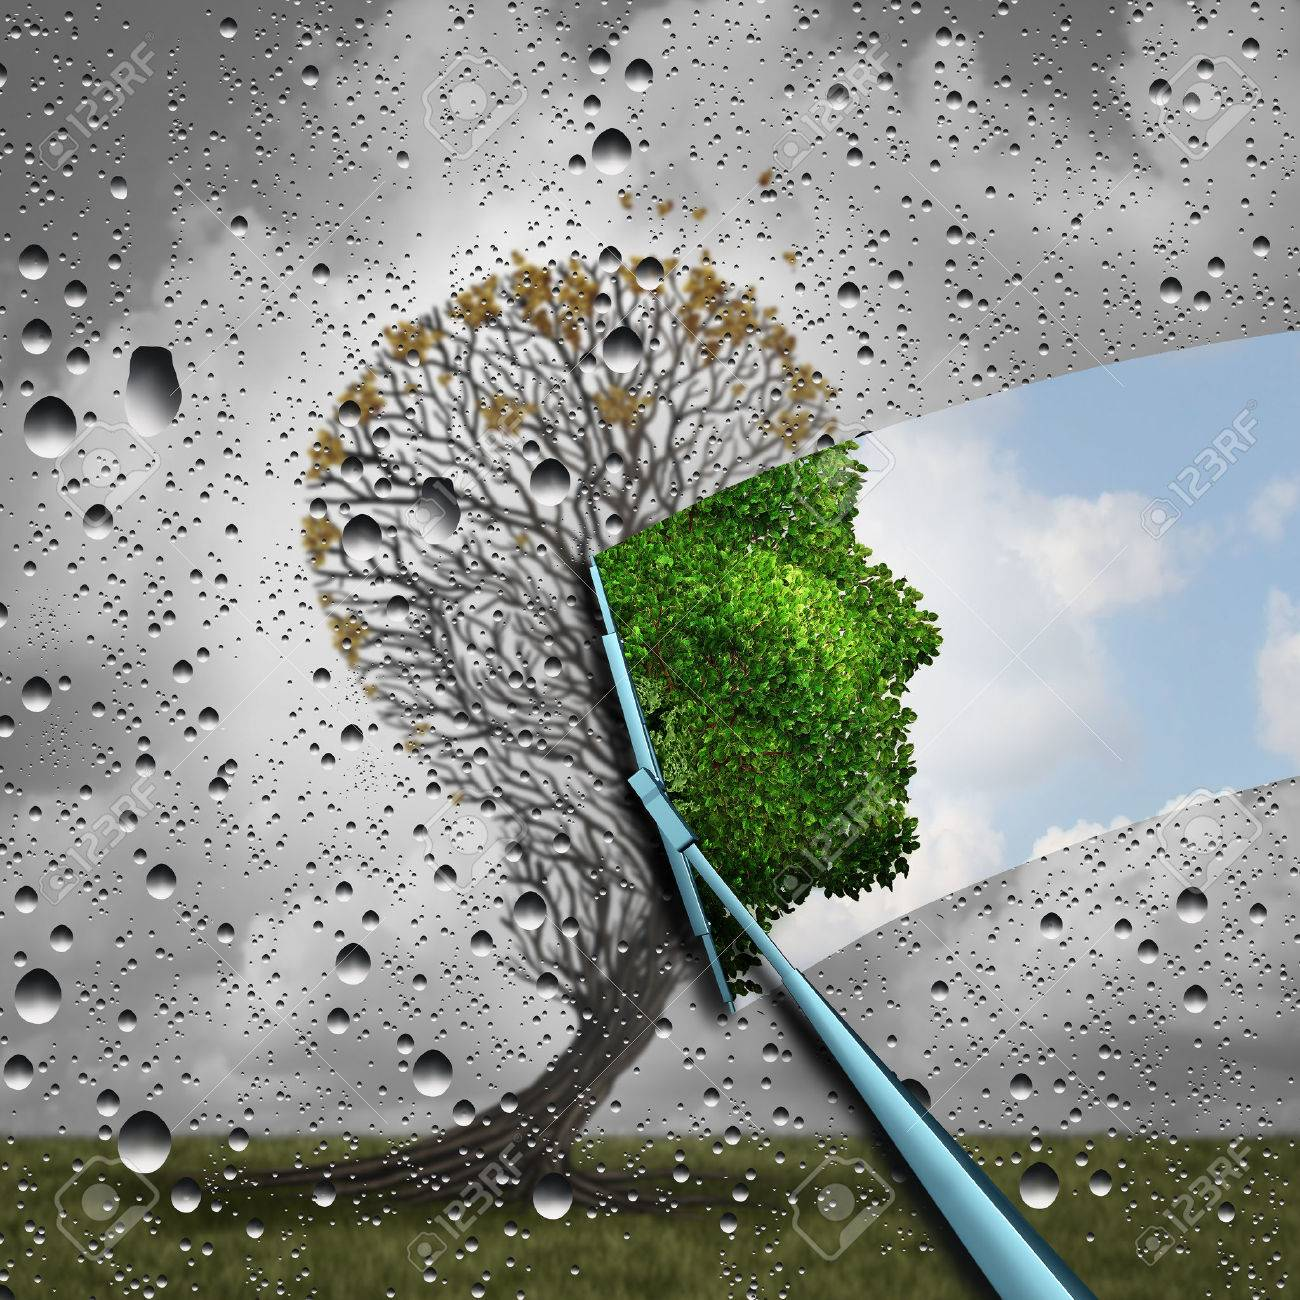 Reverse aging process and make young again medical concept or plastic surgery symbol as a wiper wiping away old decaying tree and revealing to a healthy green human head plant with leaves as a medical metaphor for renewal with 3D illustration elements. Standard-Bild - 59131889